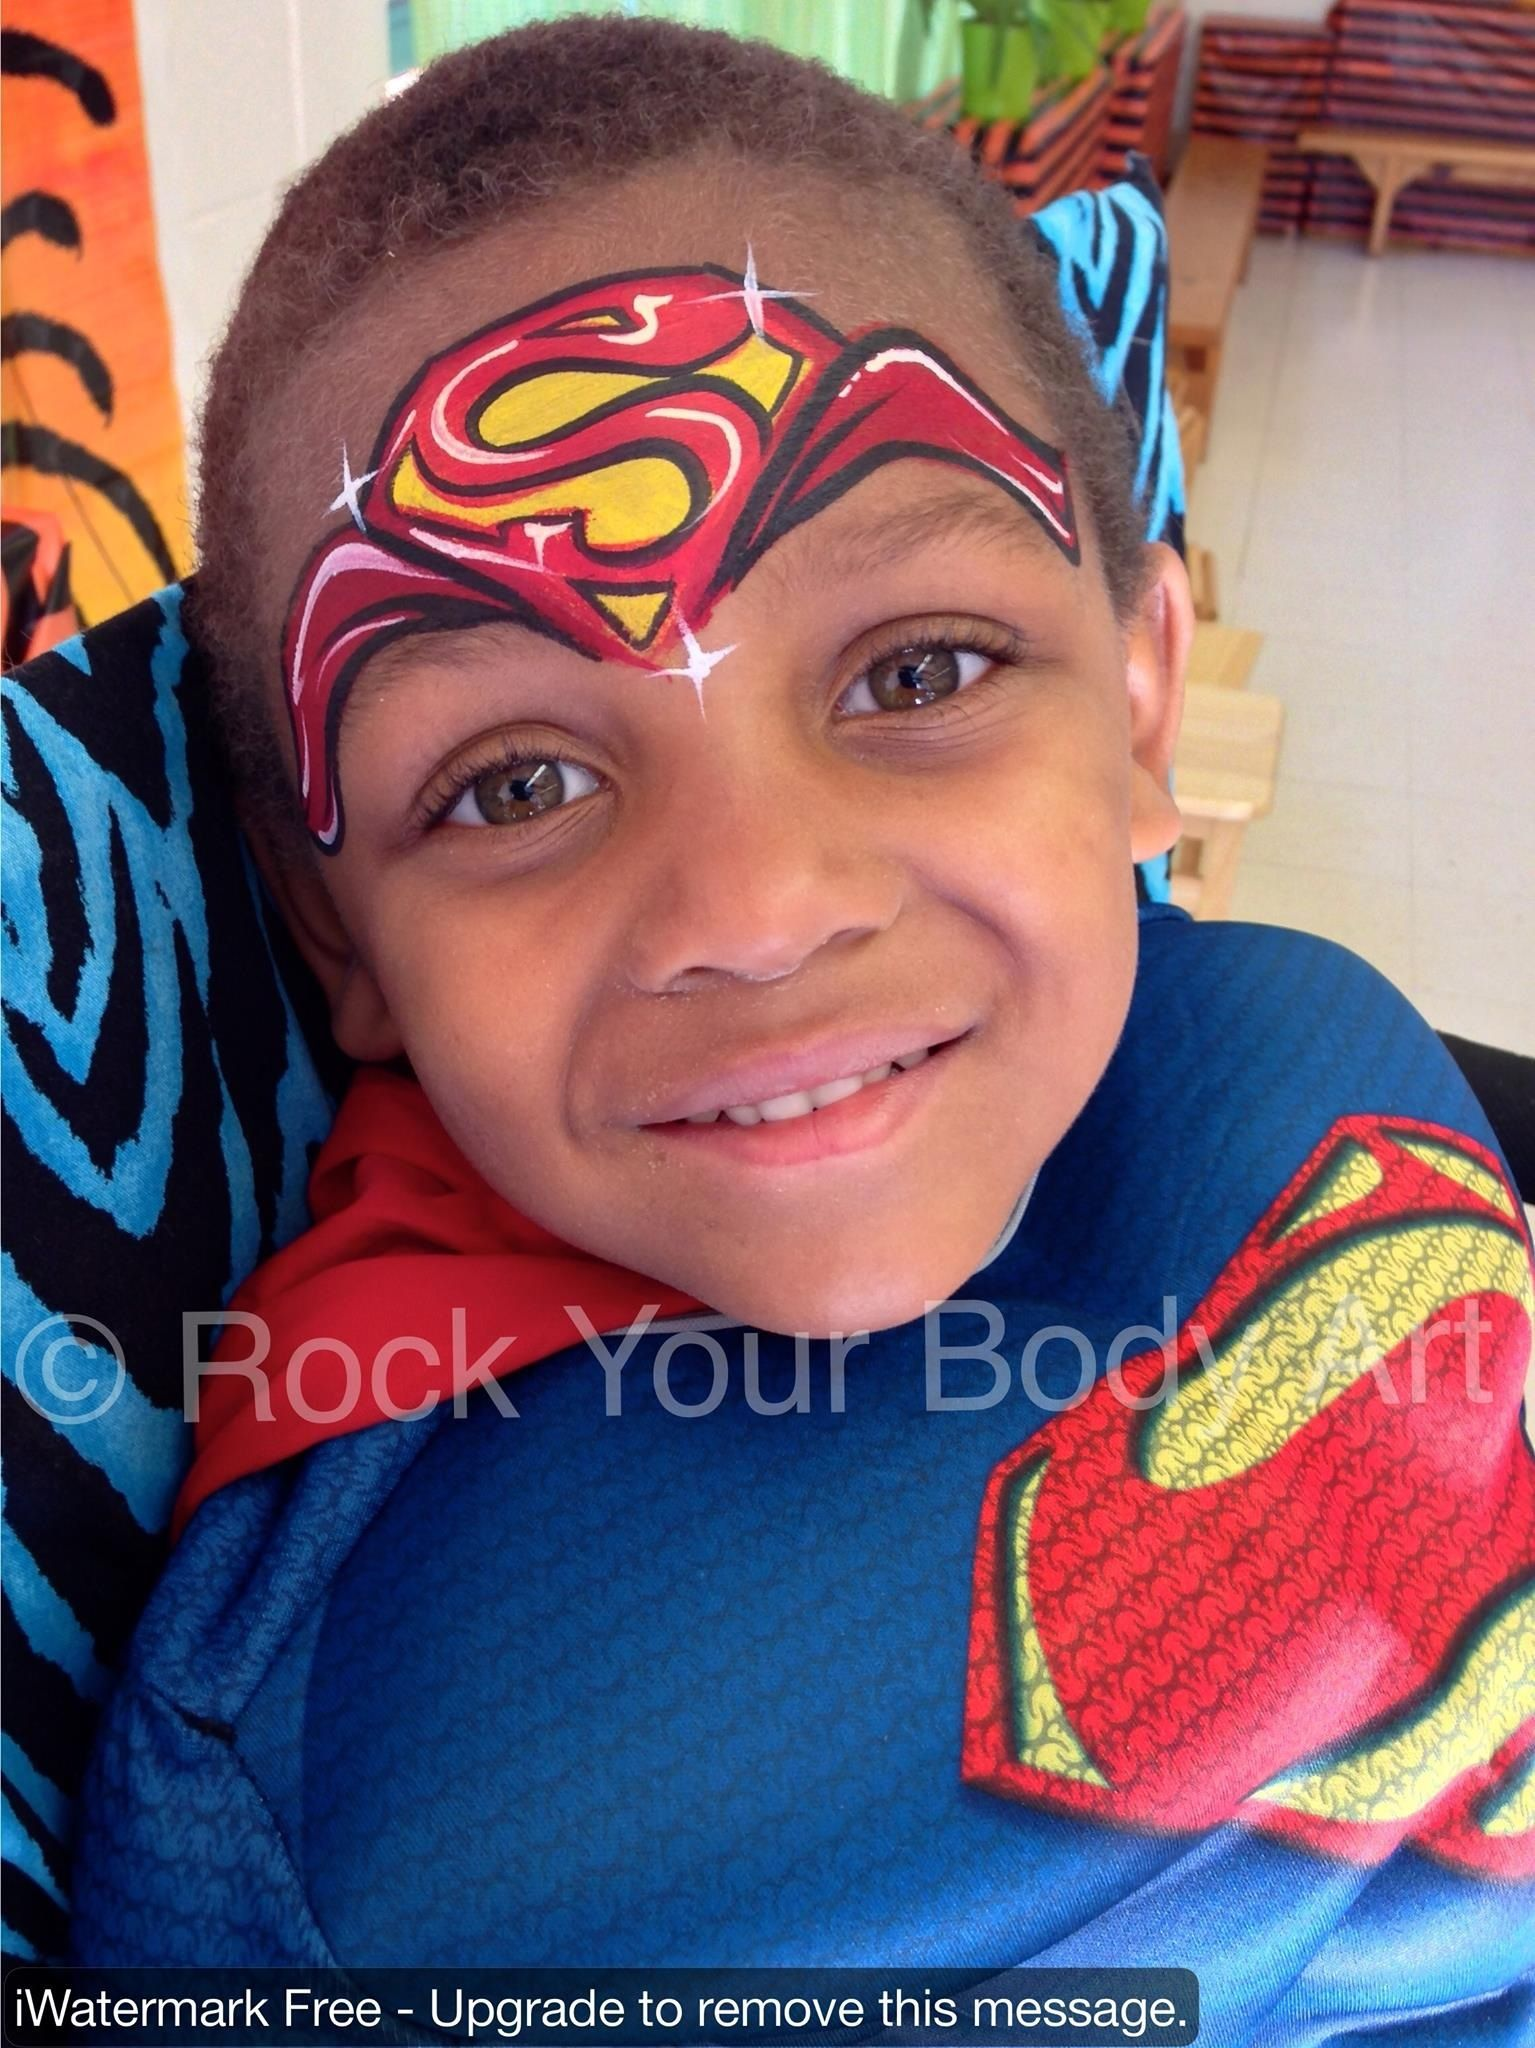 Pin By Marcy Santos On Superhero Superhero Face Painting Superman Face Painting Face Painting Designs